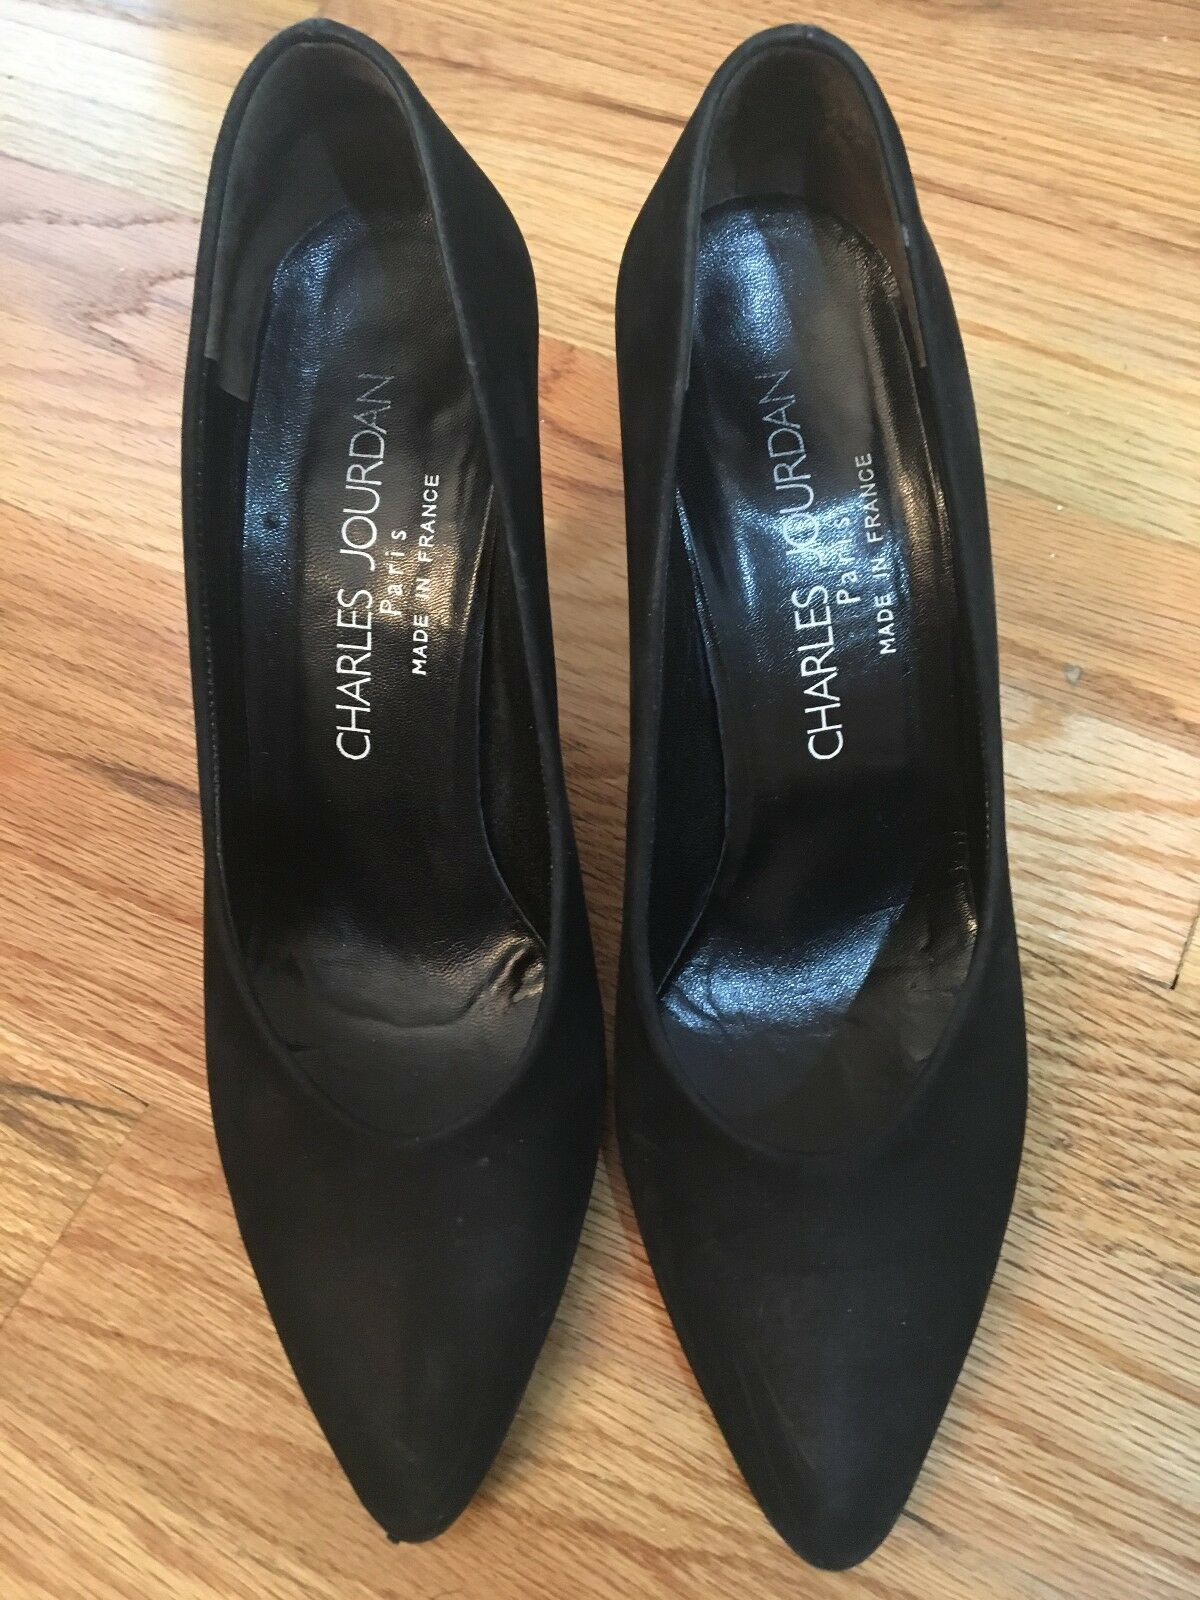 Charles Charles Charles Jourdan shoes  Pumps-Black Suede- Silver Mirror heel Excellent Condition b2c5f7